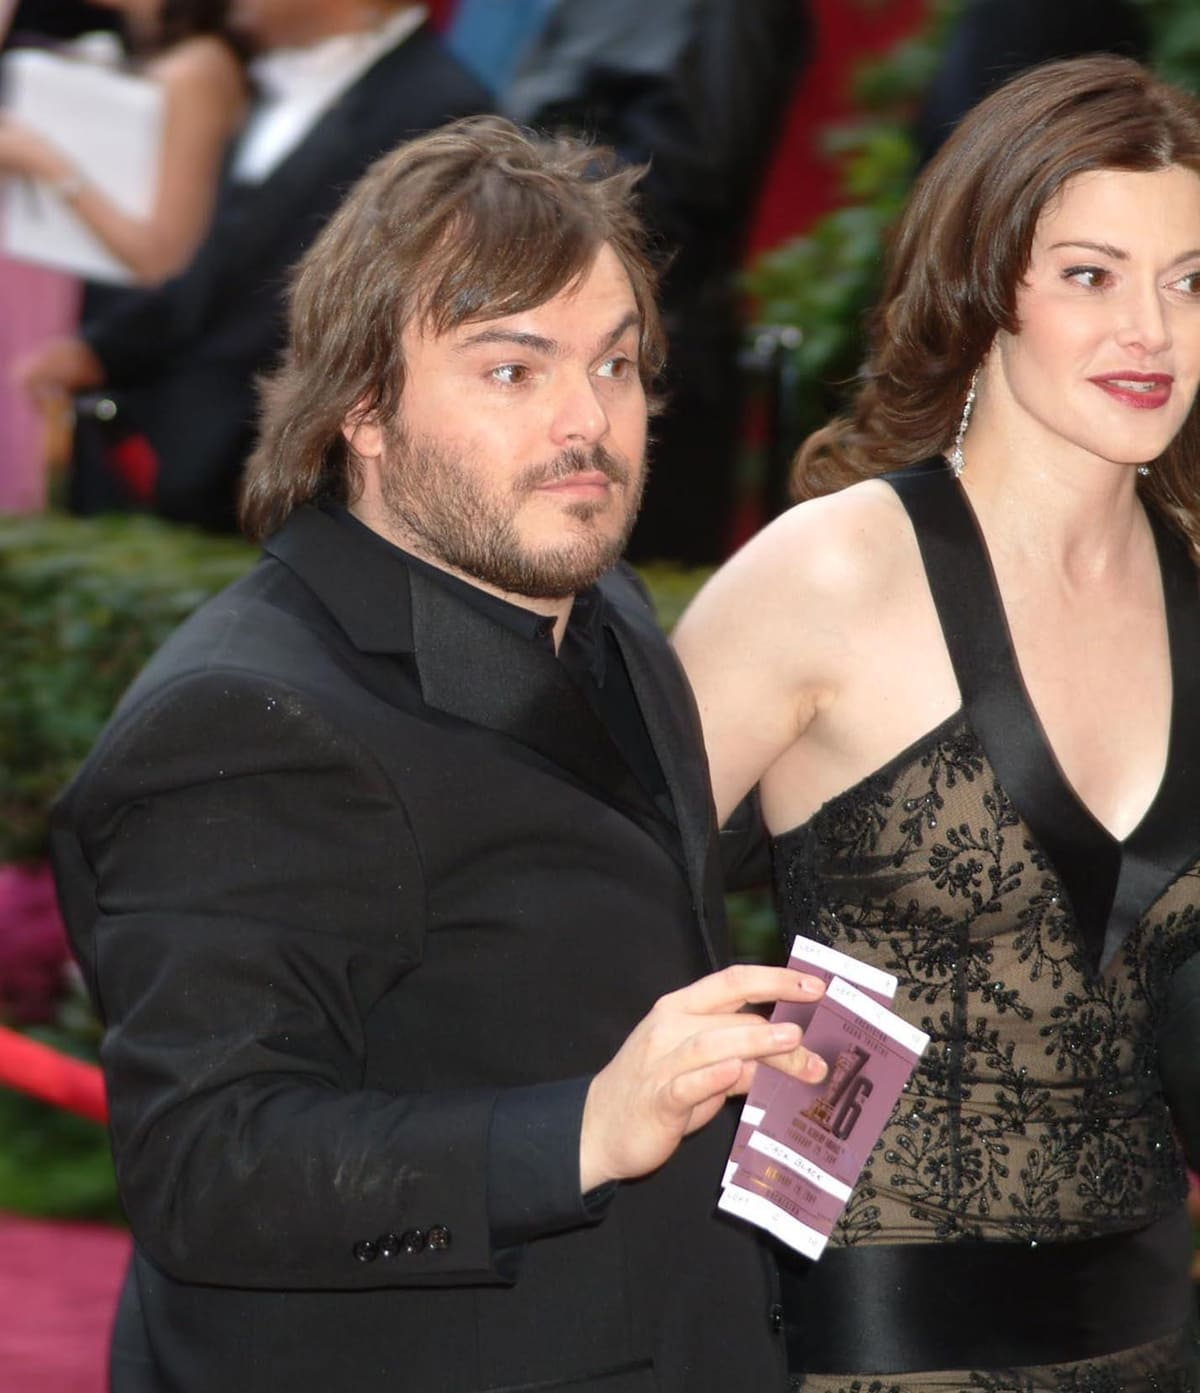 Laura Kightlinger and Jack Black dated from 1996 through early 2005